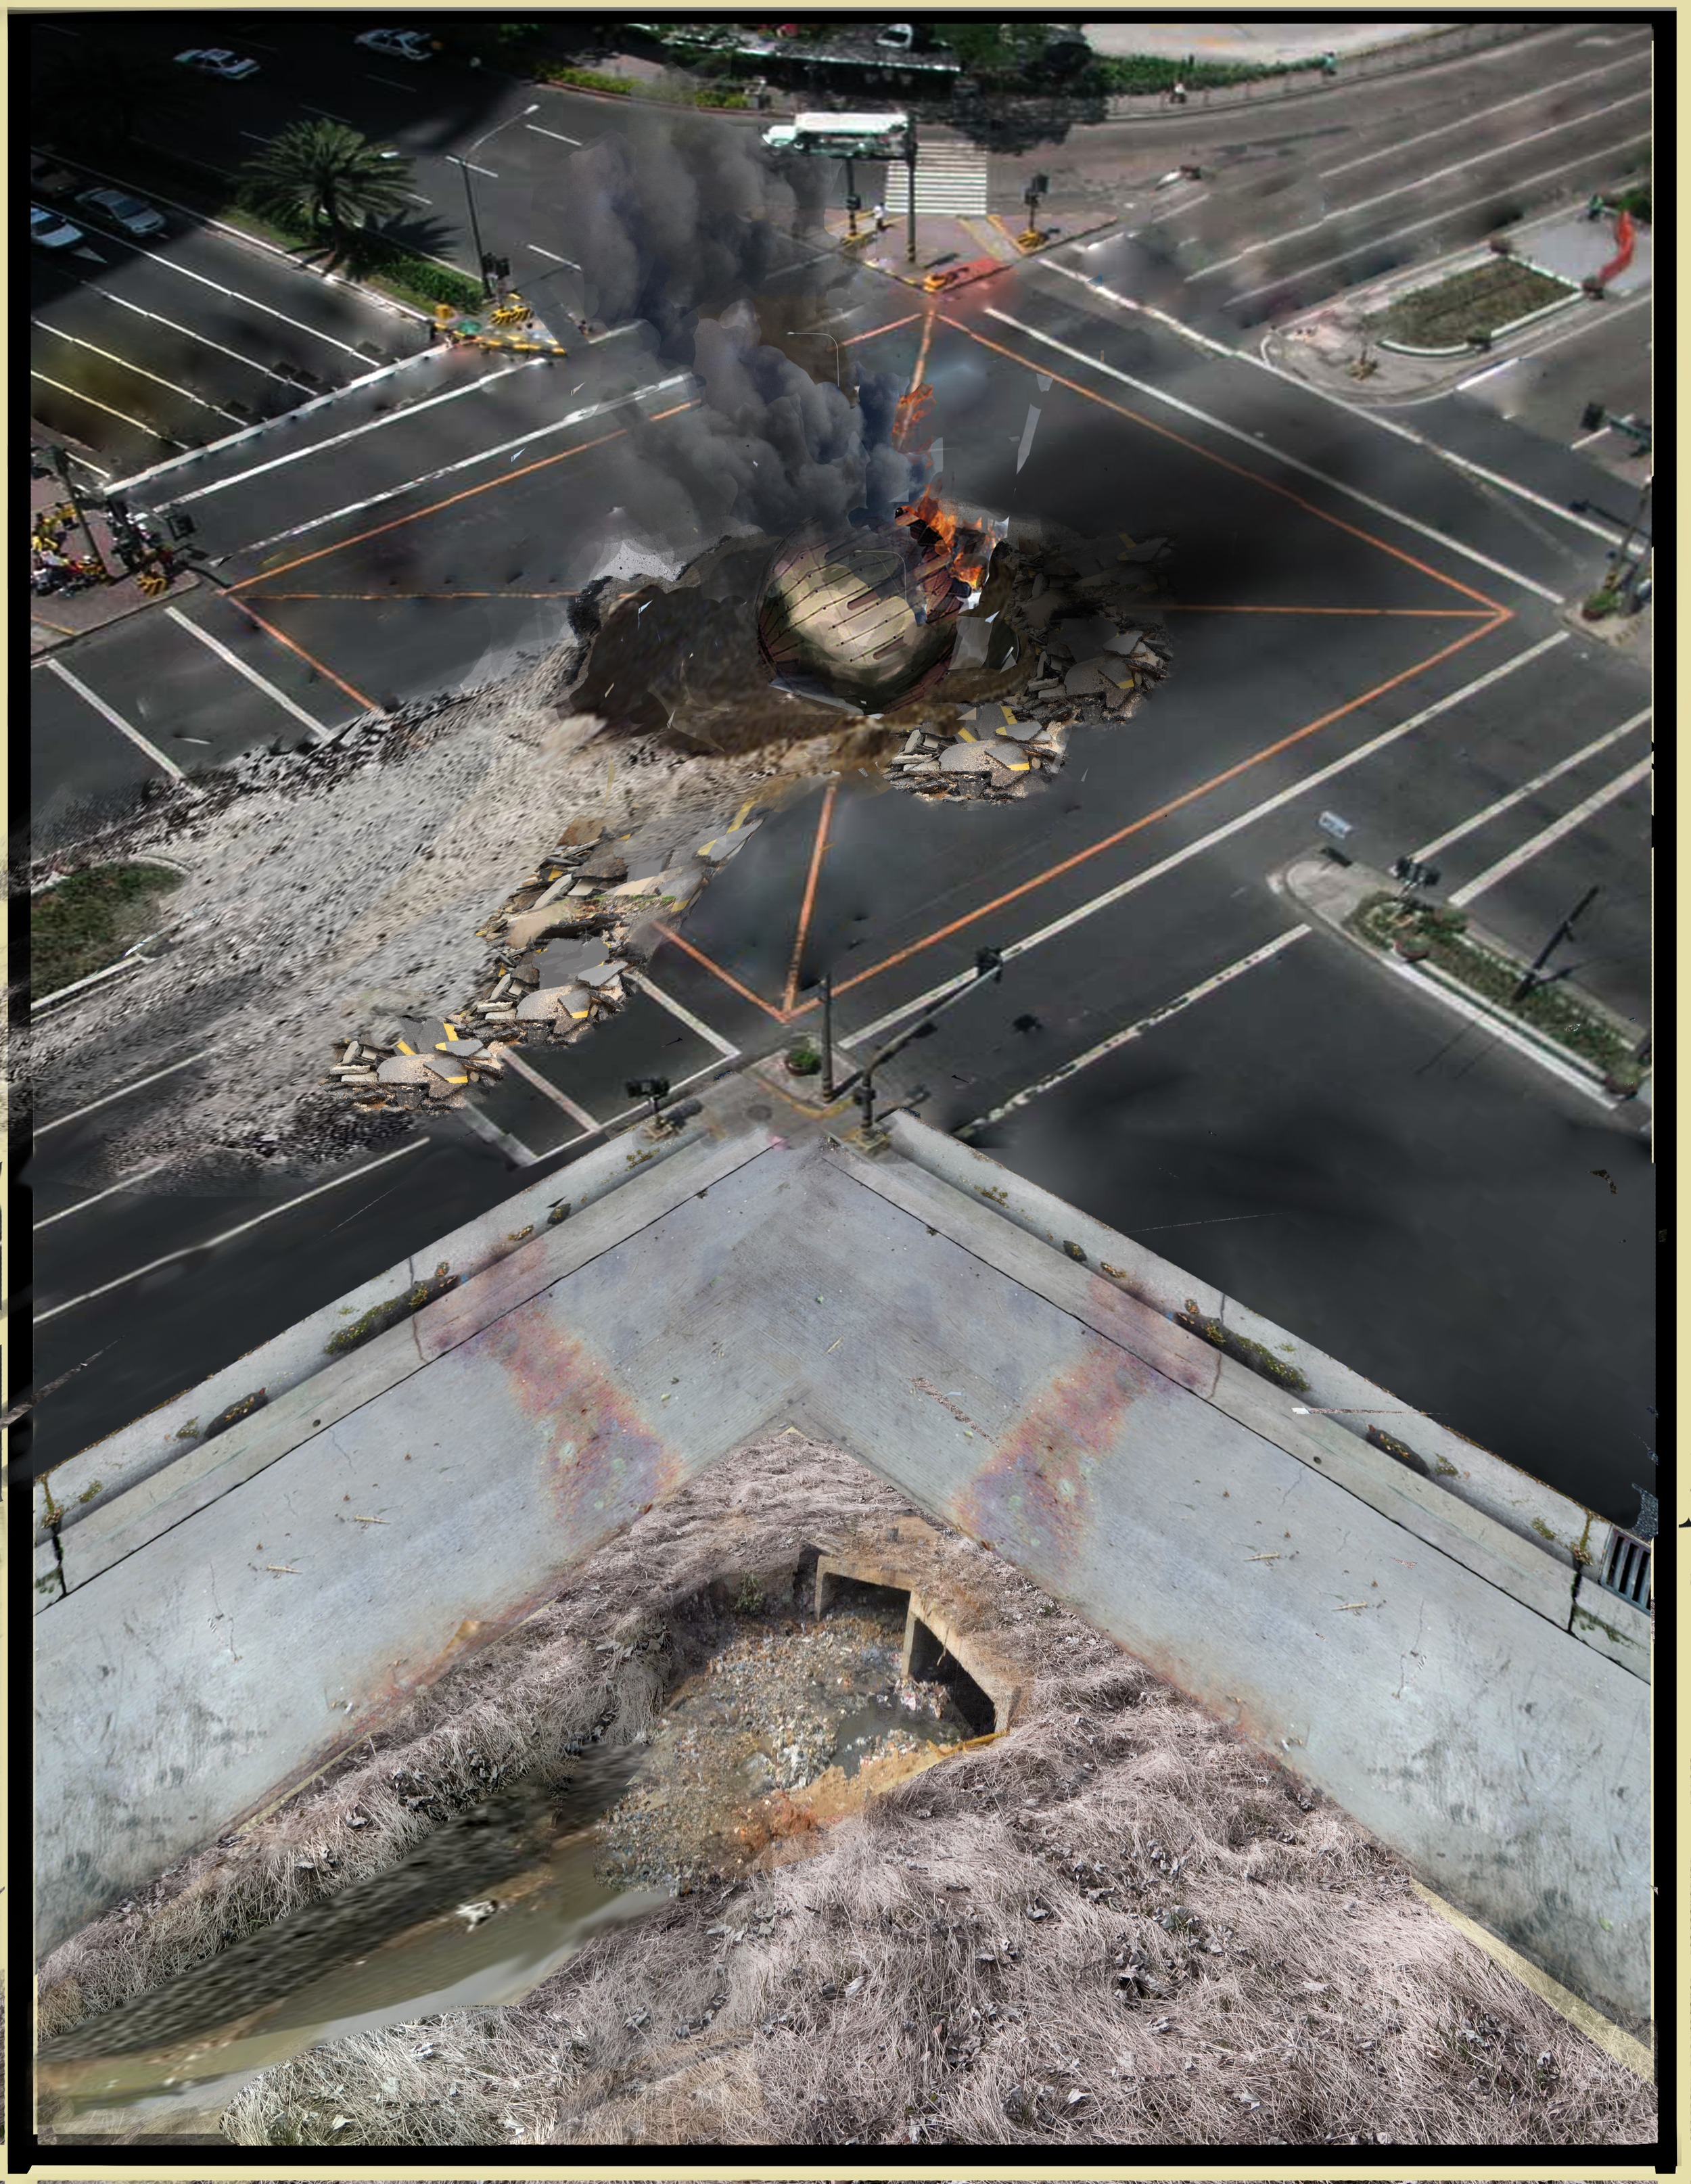 Drone crash. This was created using a technique called matte painting. This involved taking photos and splicing them together and creating a new image.